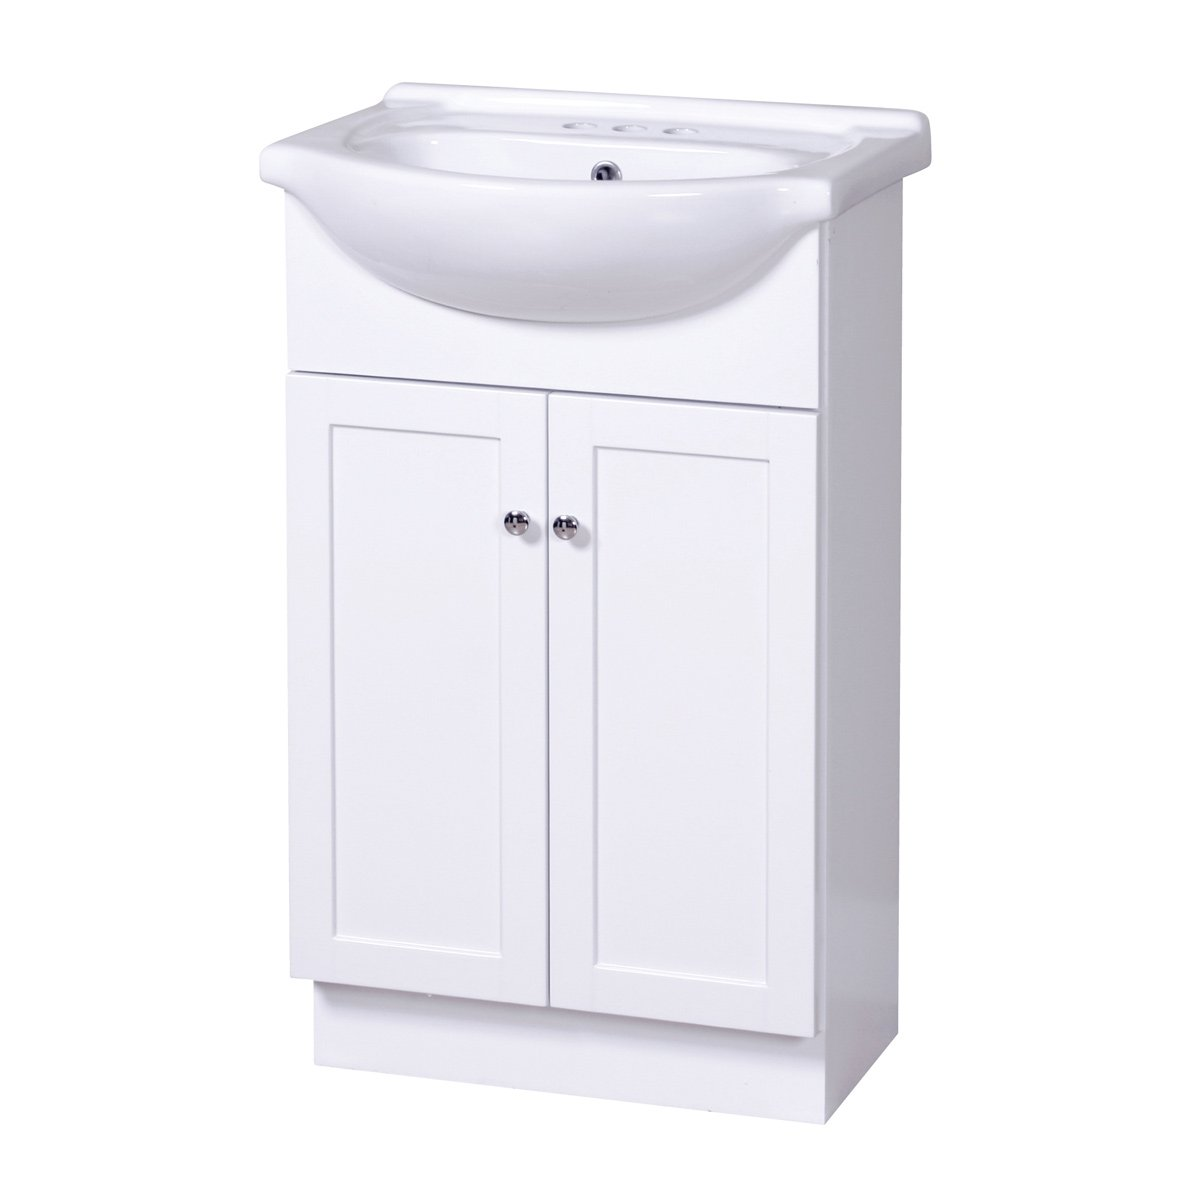 Foremost COWA2135 Columbia White Euro Bath Vanity Combo   Bathroom Vanities    Amazon.com